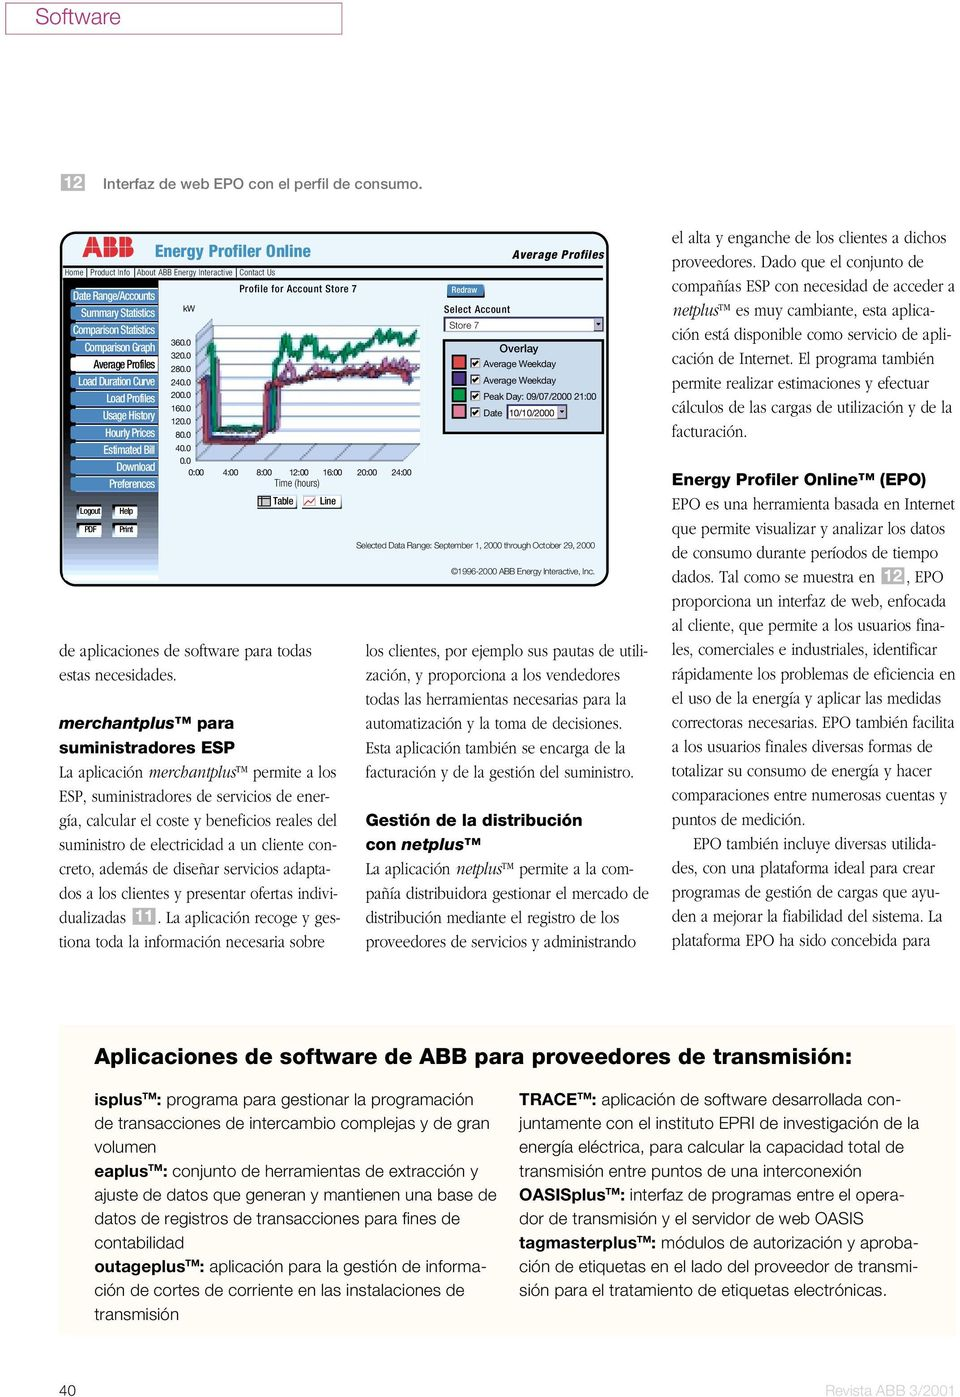 PDF Help Print Energy Profiler Online Home Product Info About ABB Energy Interactive Contact Us kw 360.0 320.0 280.0 240.0 200.0 160.0 120.0 80.0 Profile for Account Store 7 40.0 0.